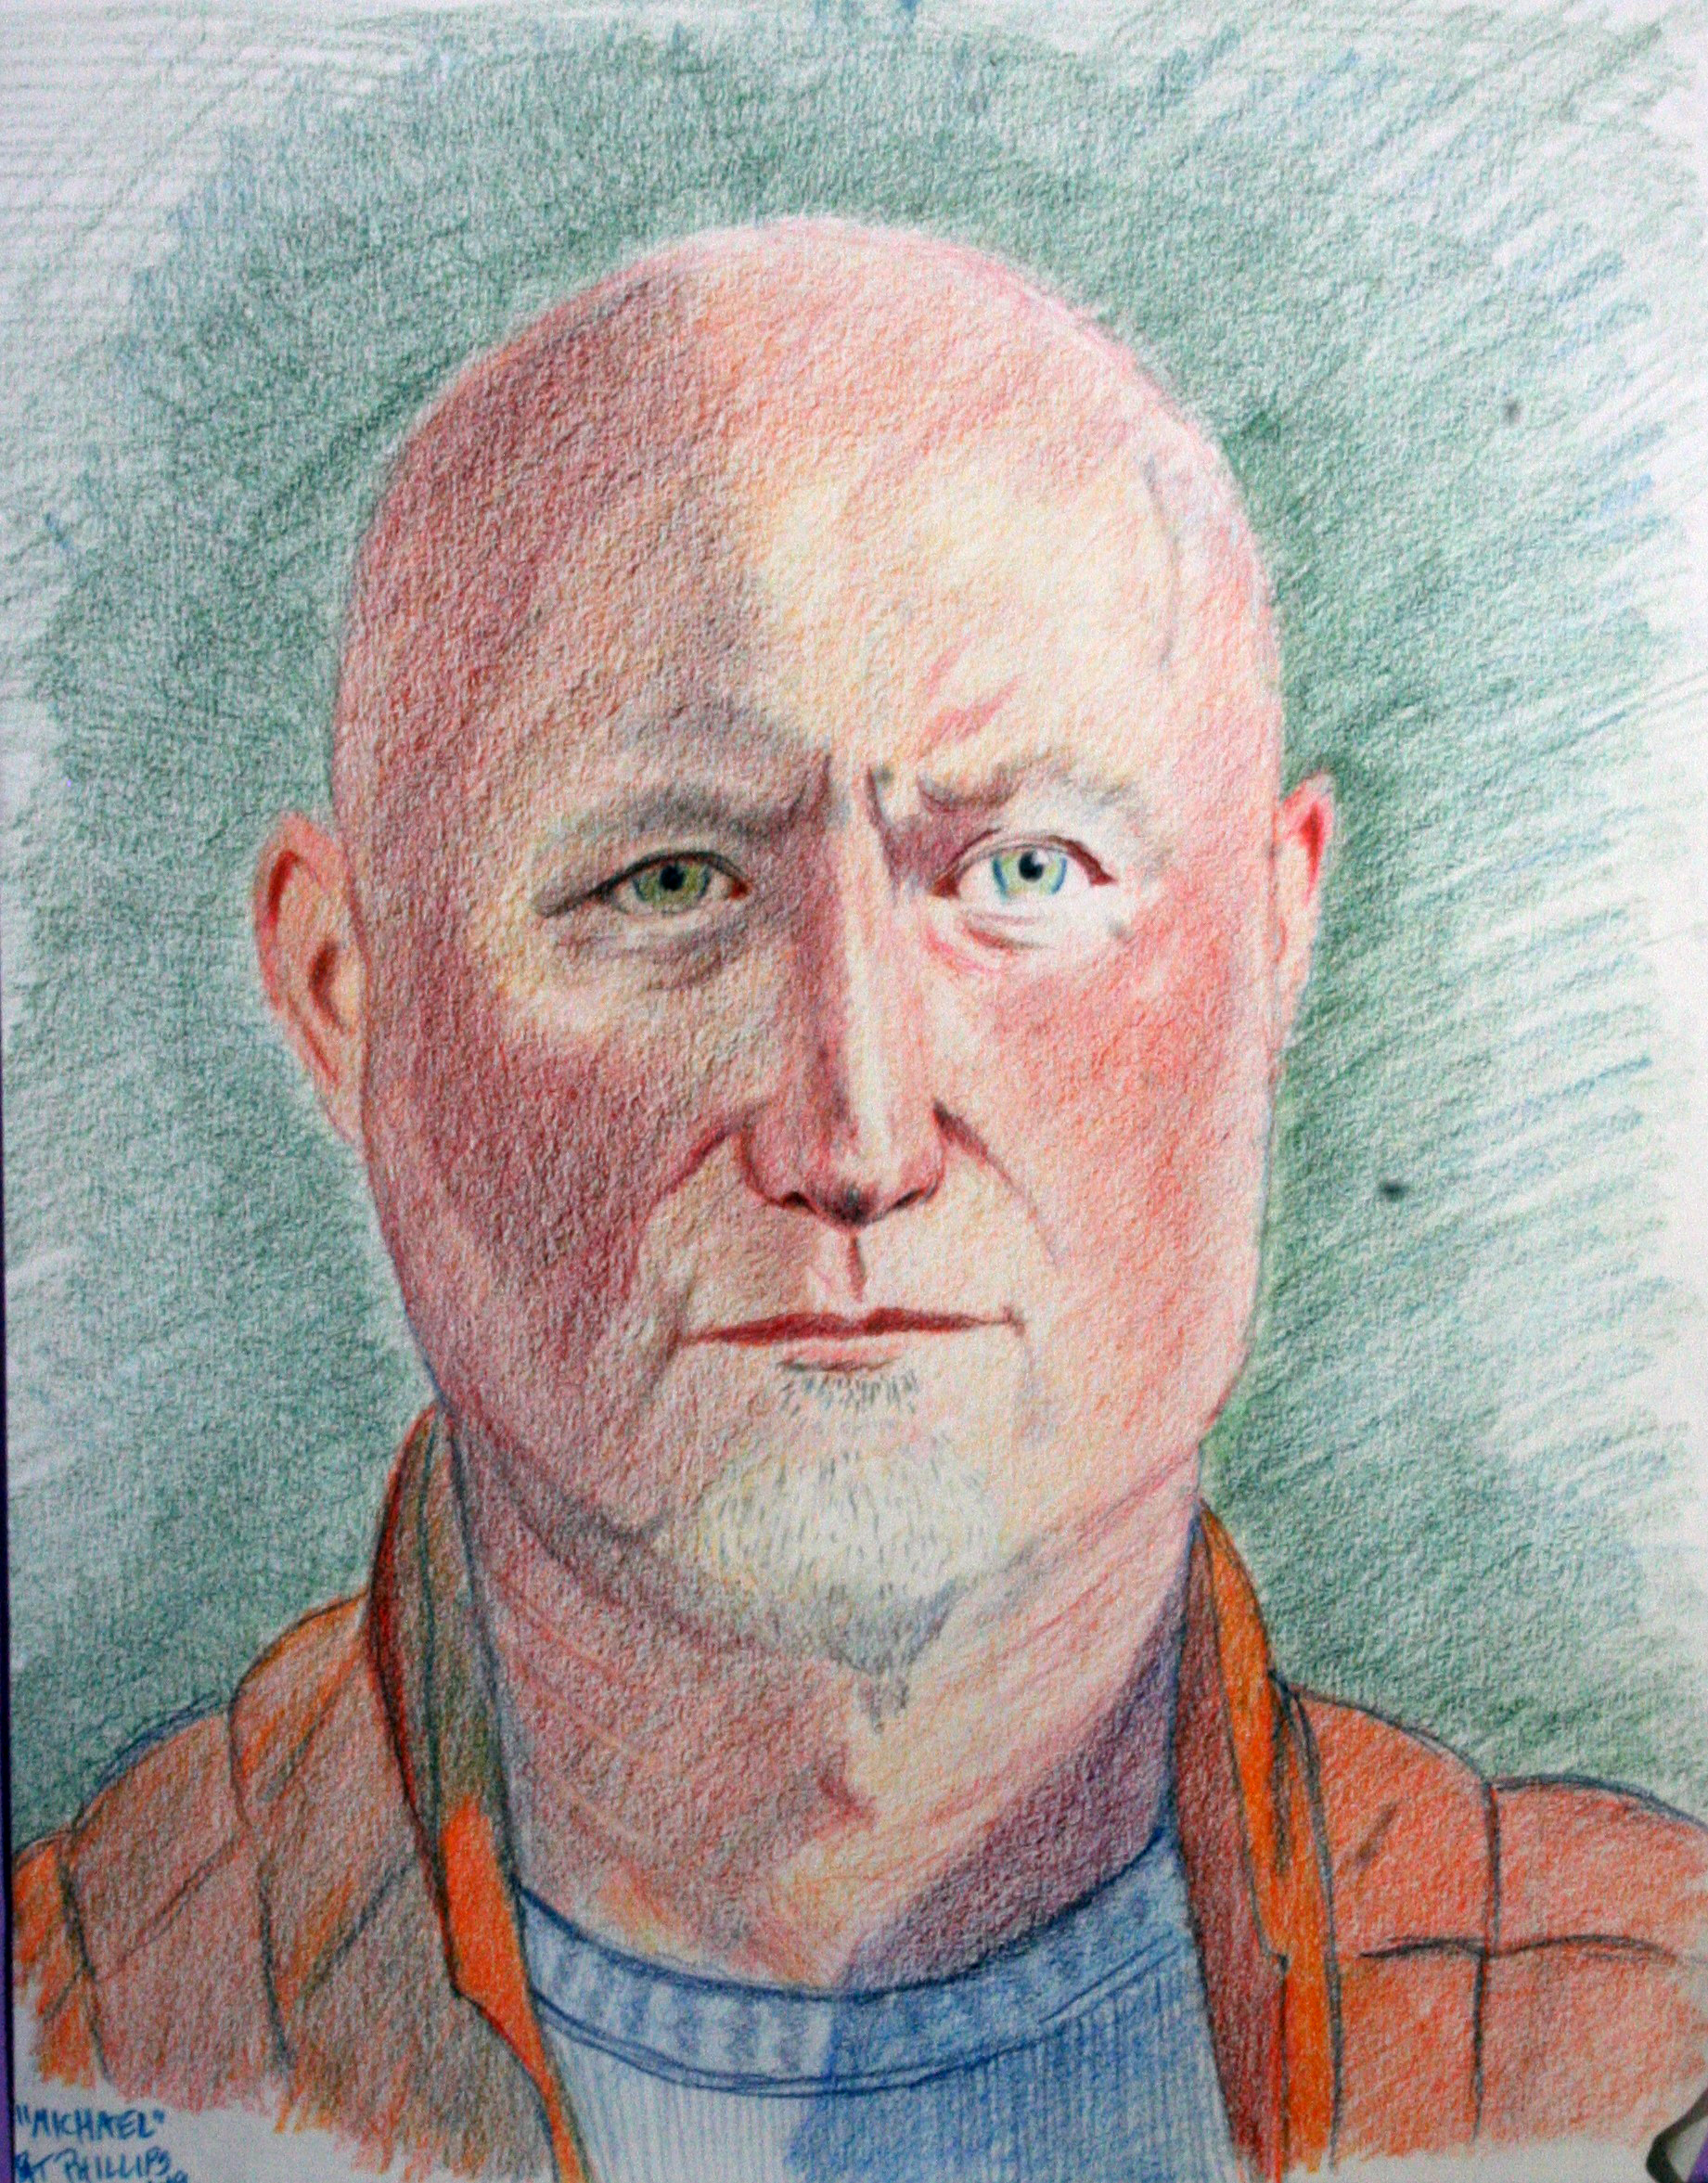 Pat Phillips did this colored pencil drawing.